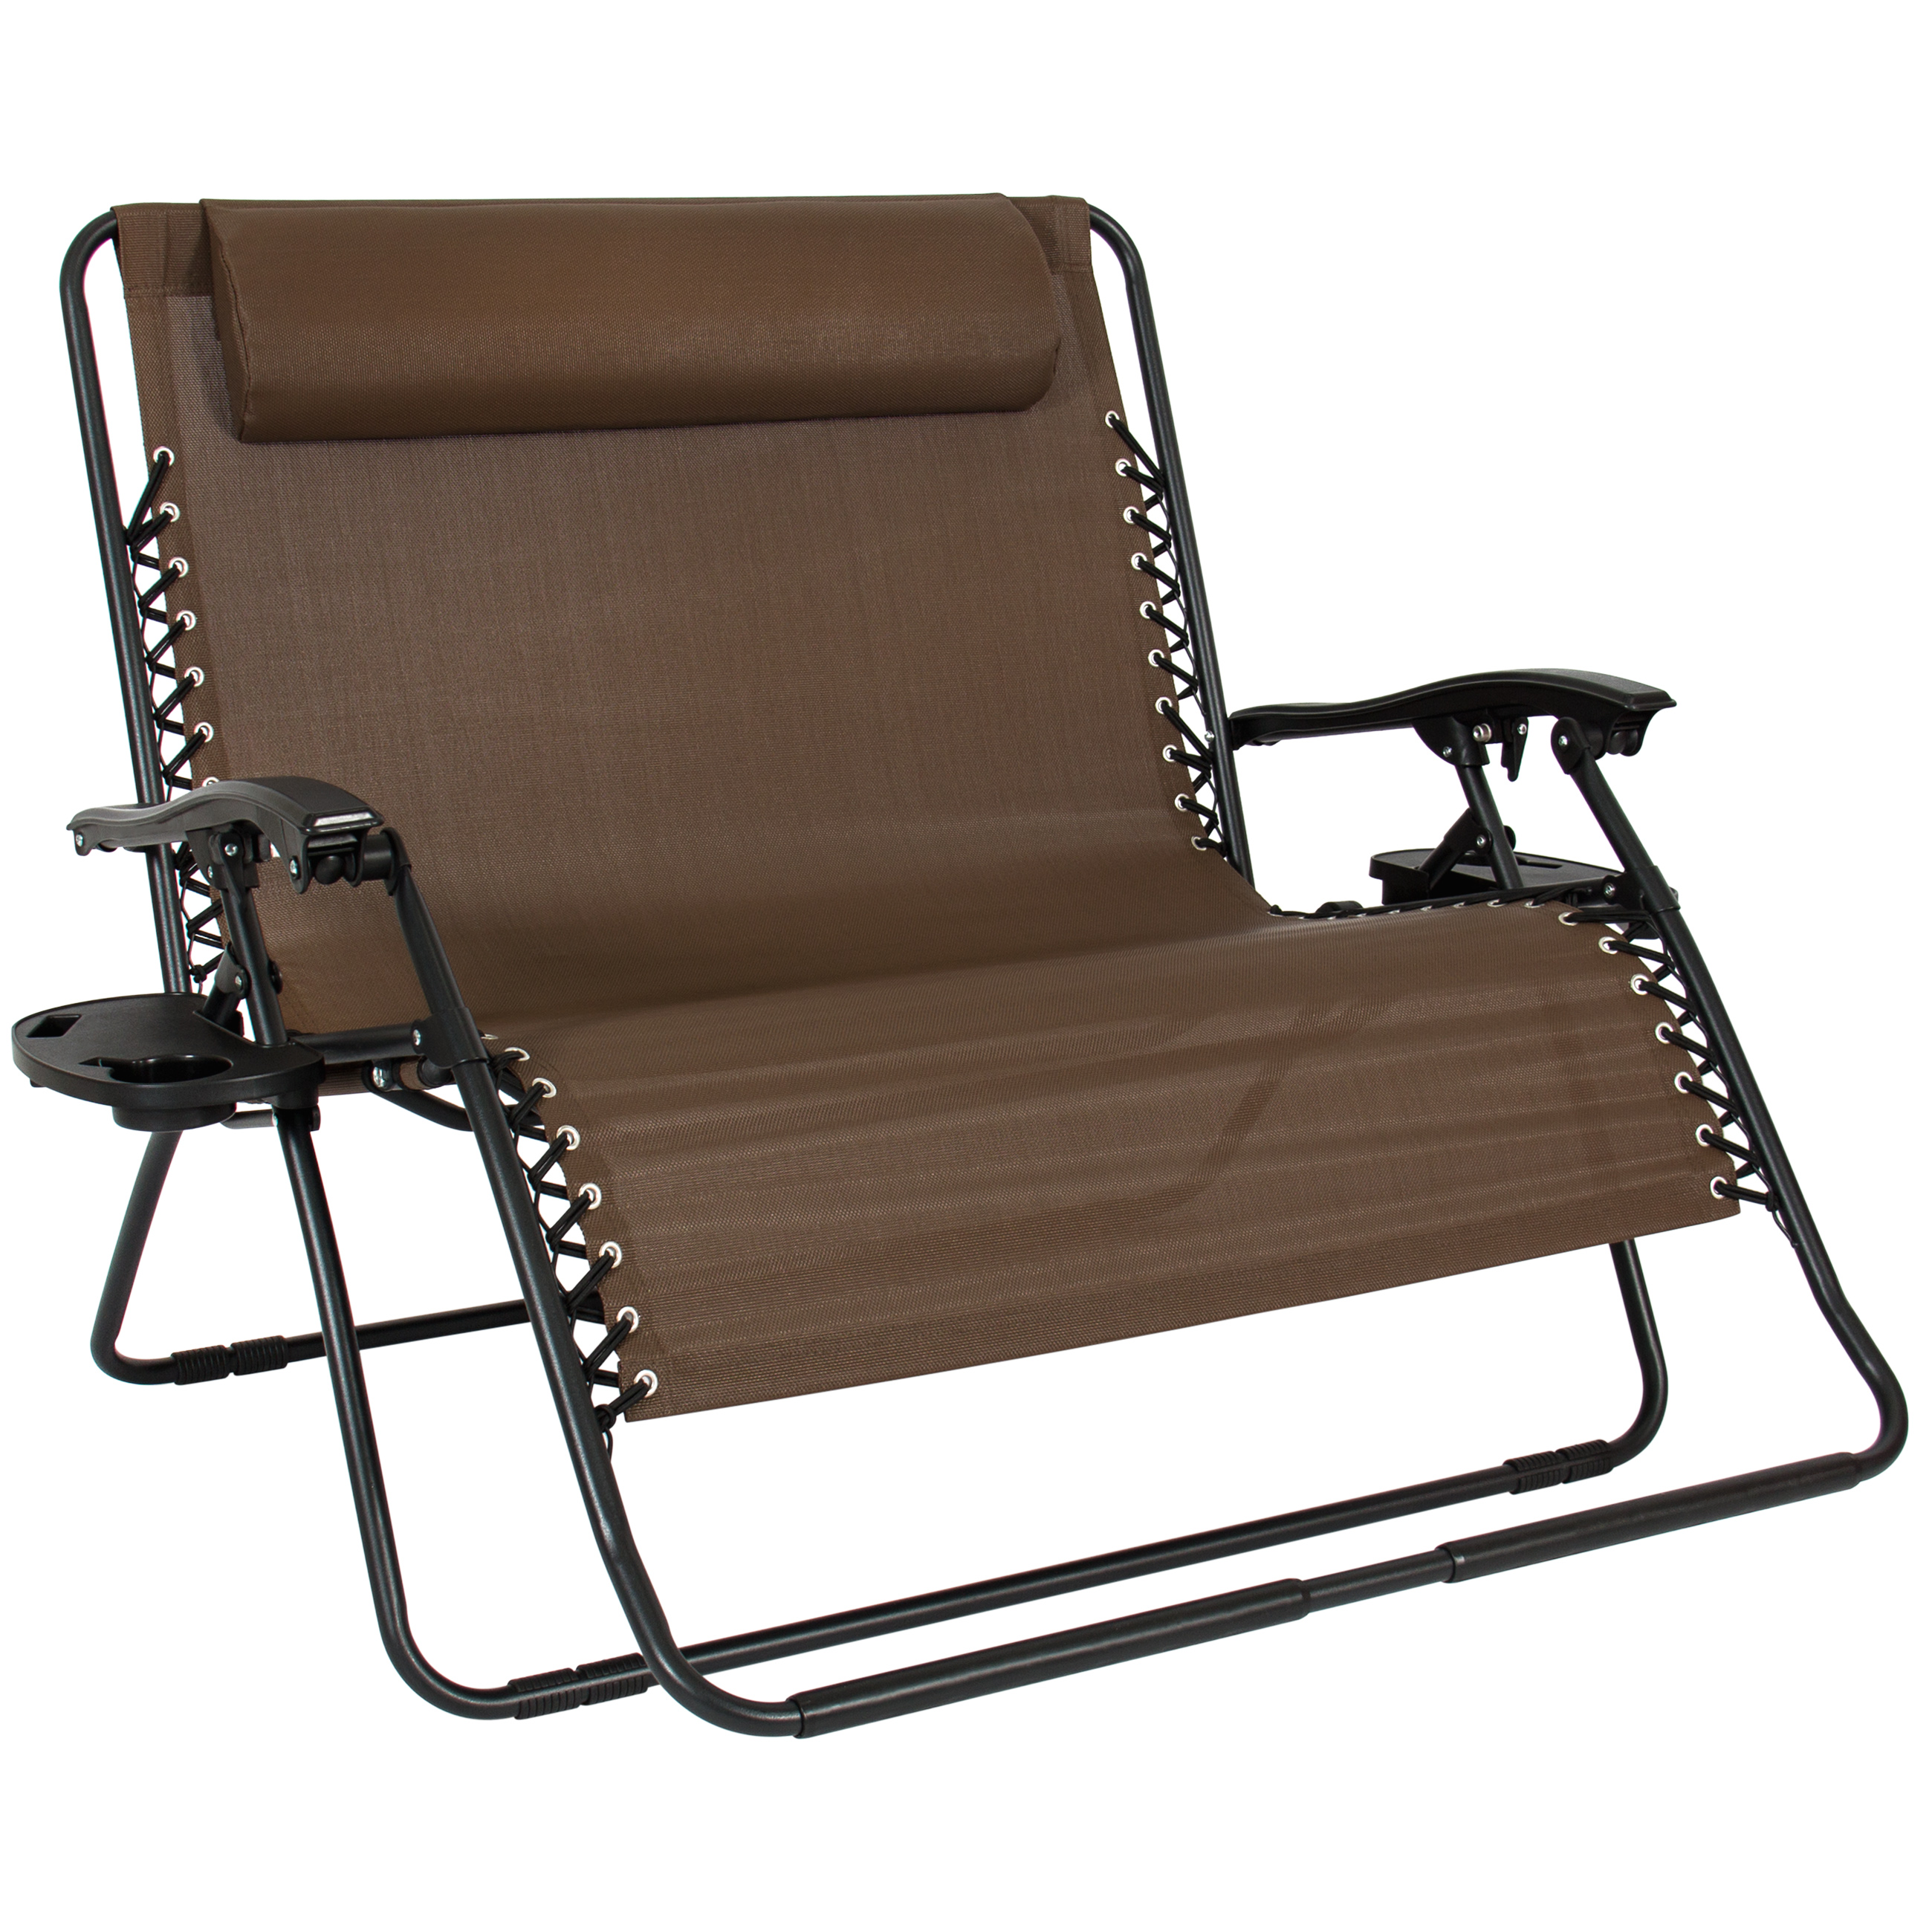 Superior Best Choice Products Folding 2 Person Oversized Zero Gravity Lounge Chair  W/ 2 Accessory Trays